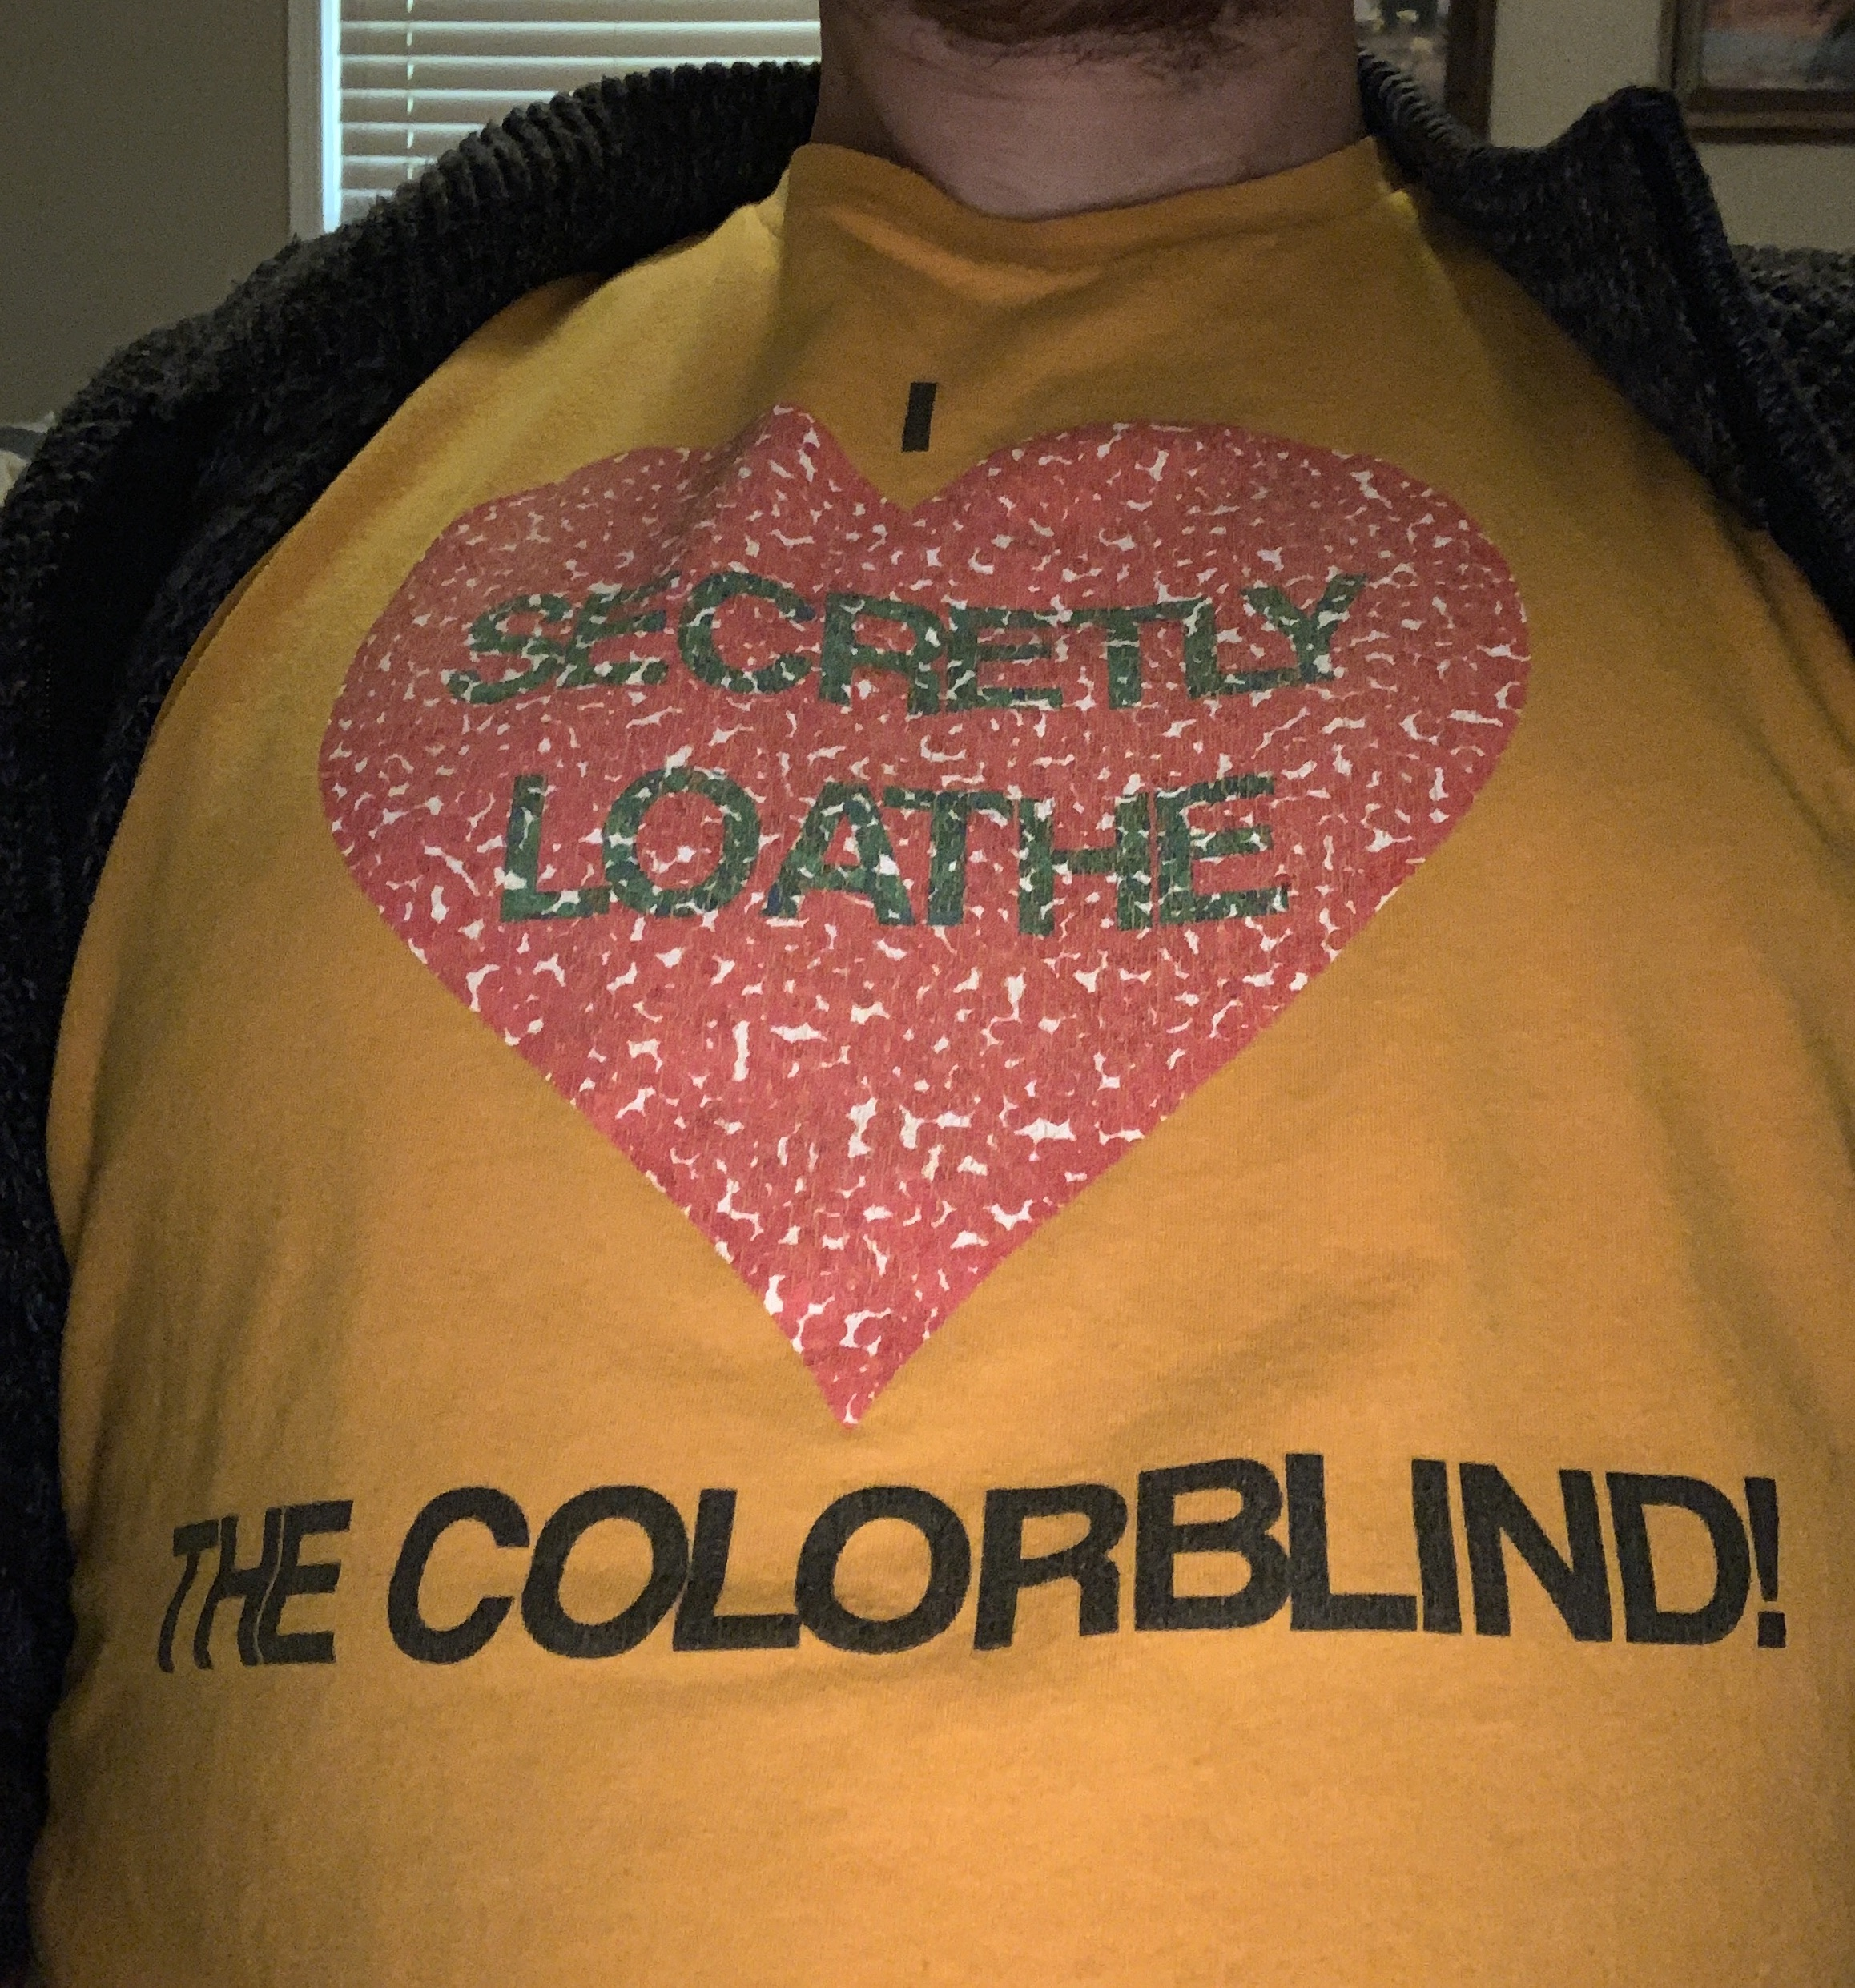 I love the colorblind?